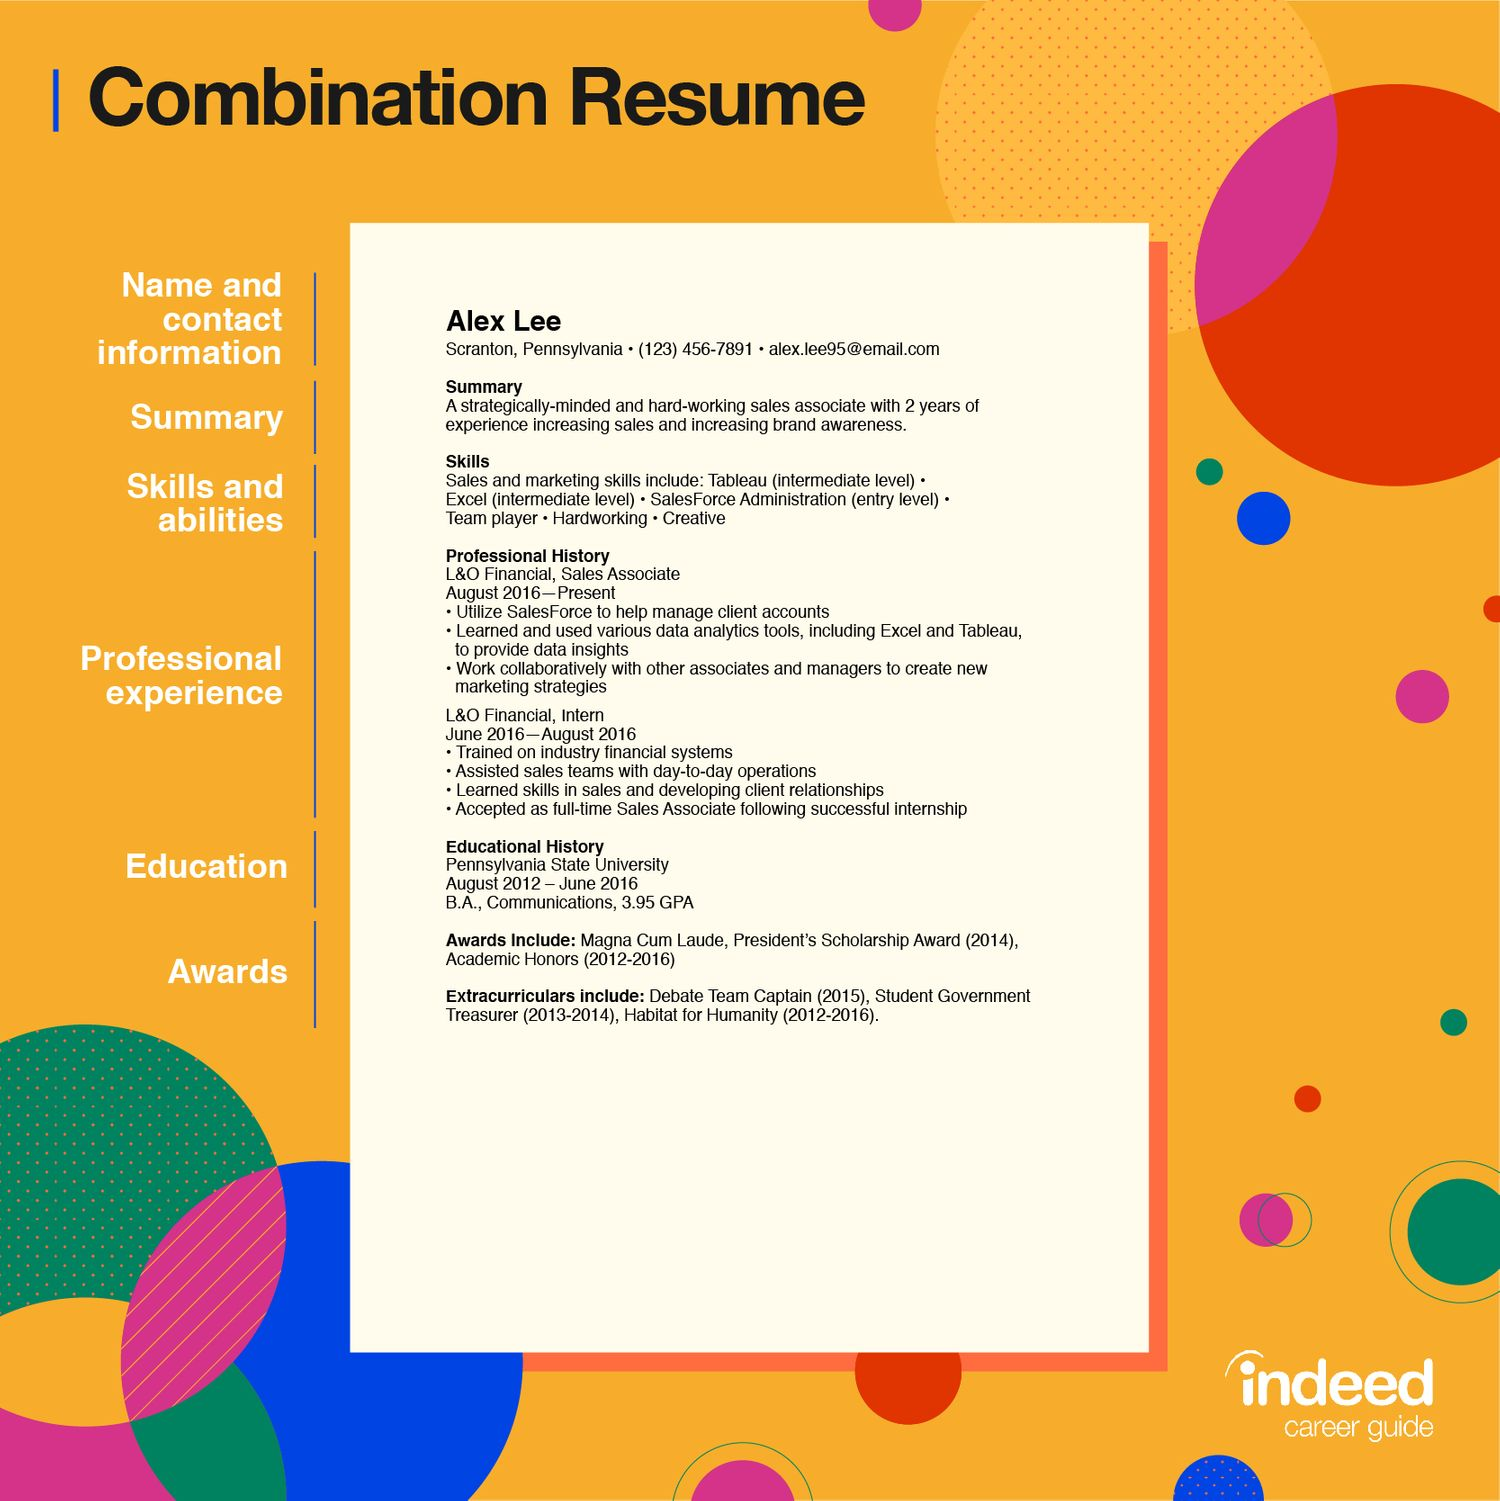 combination resume tips and examples indeed samples resized production supervisor best Resume Combination Resume Samples 2020